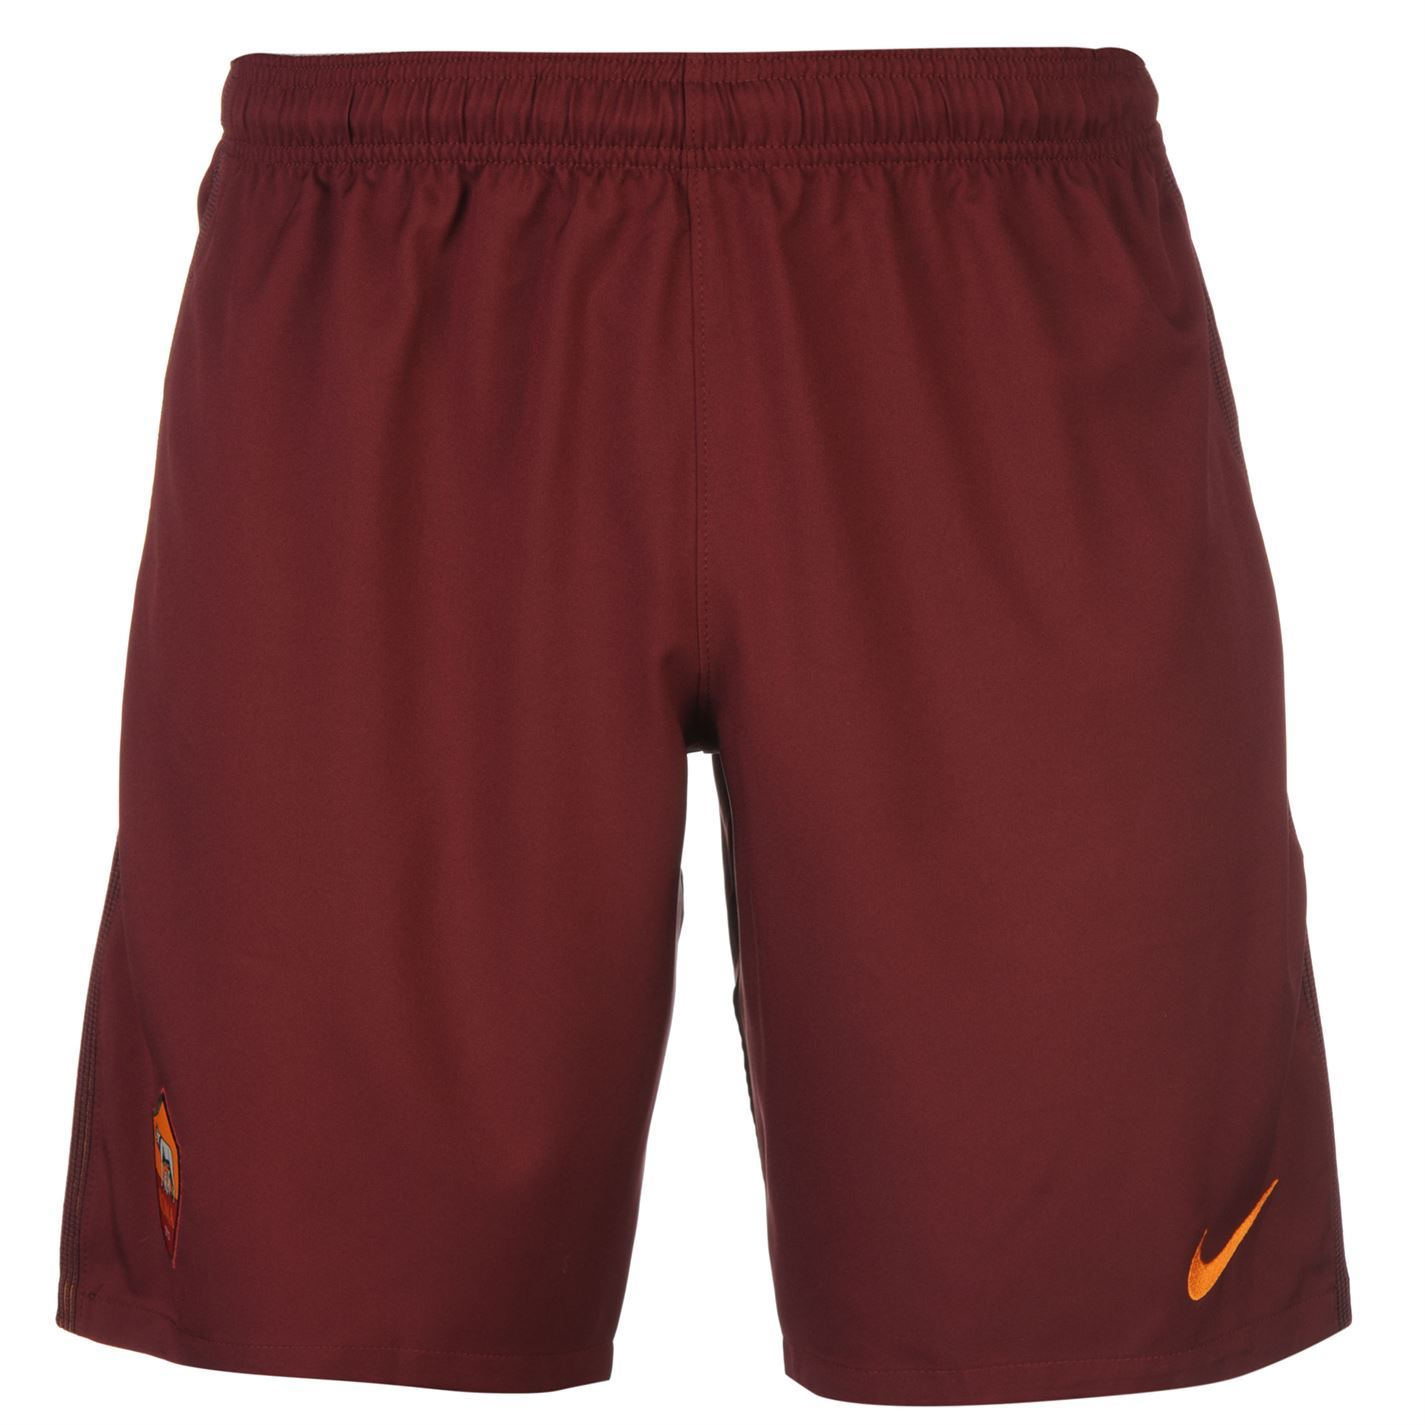 Nike AS Roma Home Shorts 2016 2017 Mens Maroon Football ...